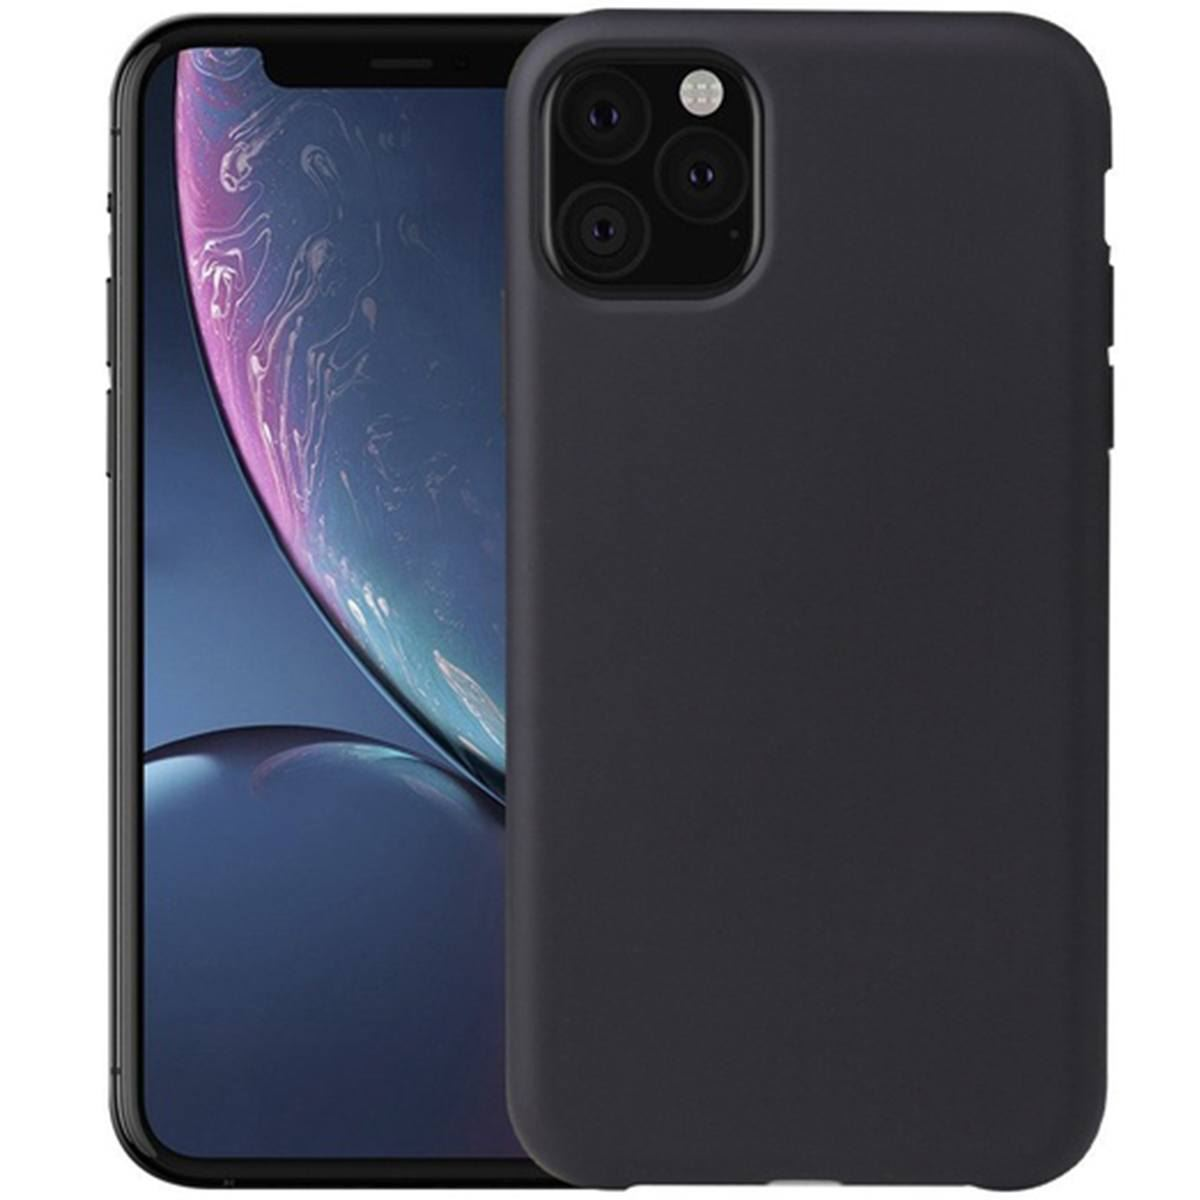 iPhone 11 Case Silicone Back Soft Rubber Cover - Black